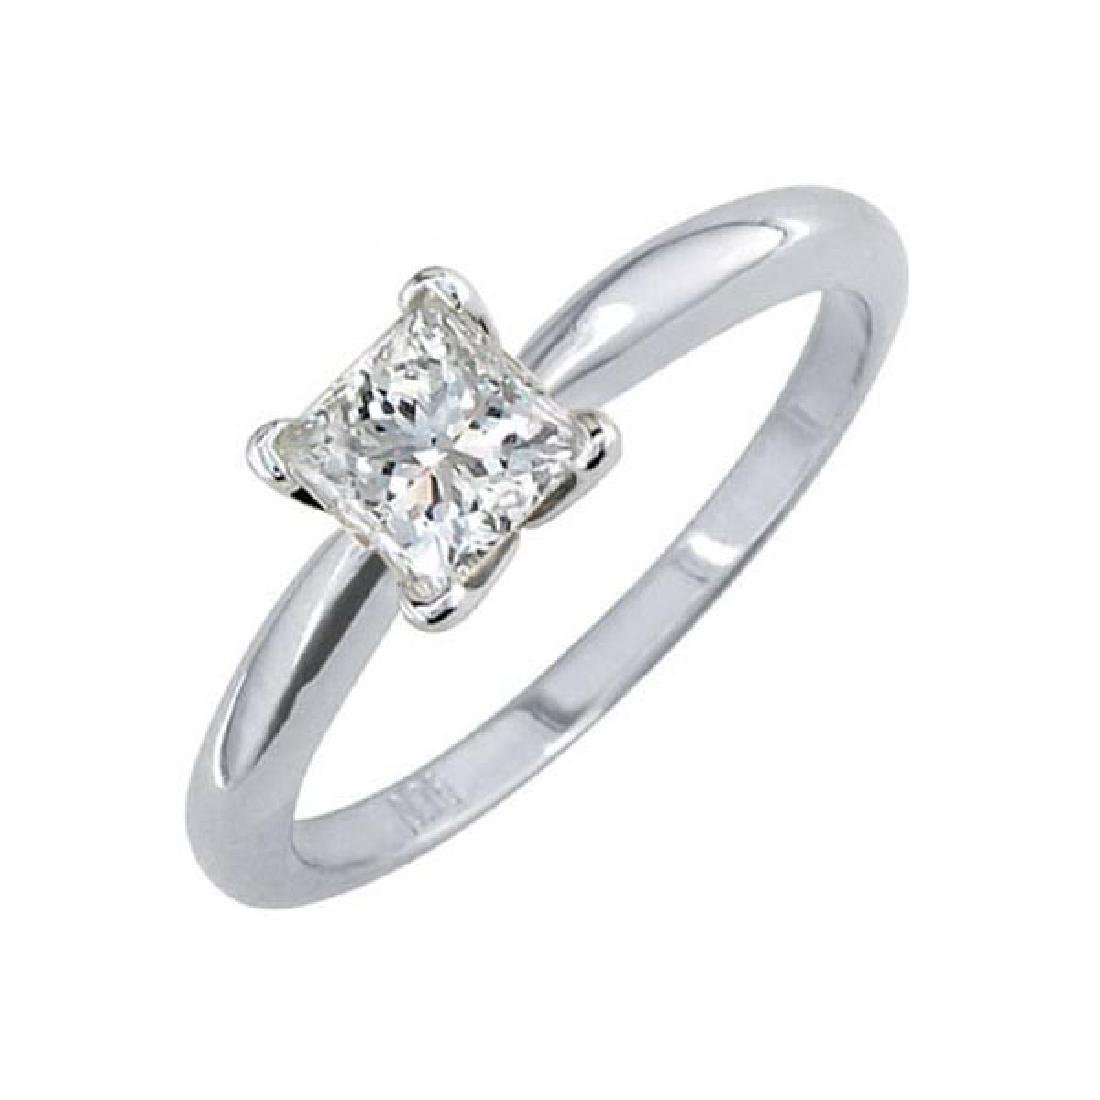 Certified 1.05 CTW Princess Diamond Solitaire 14k Ring